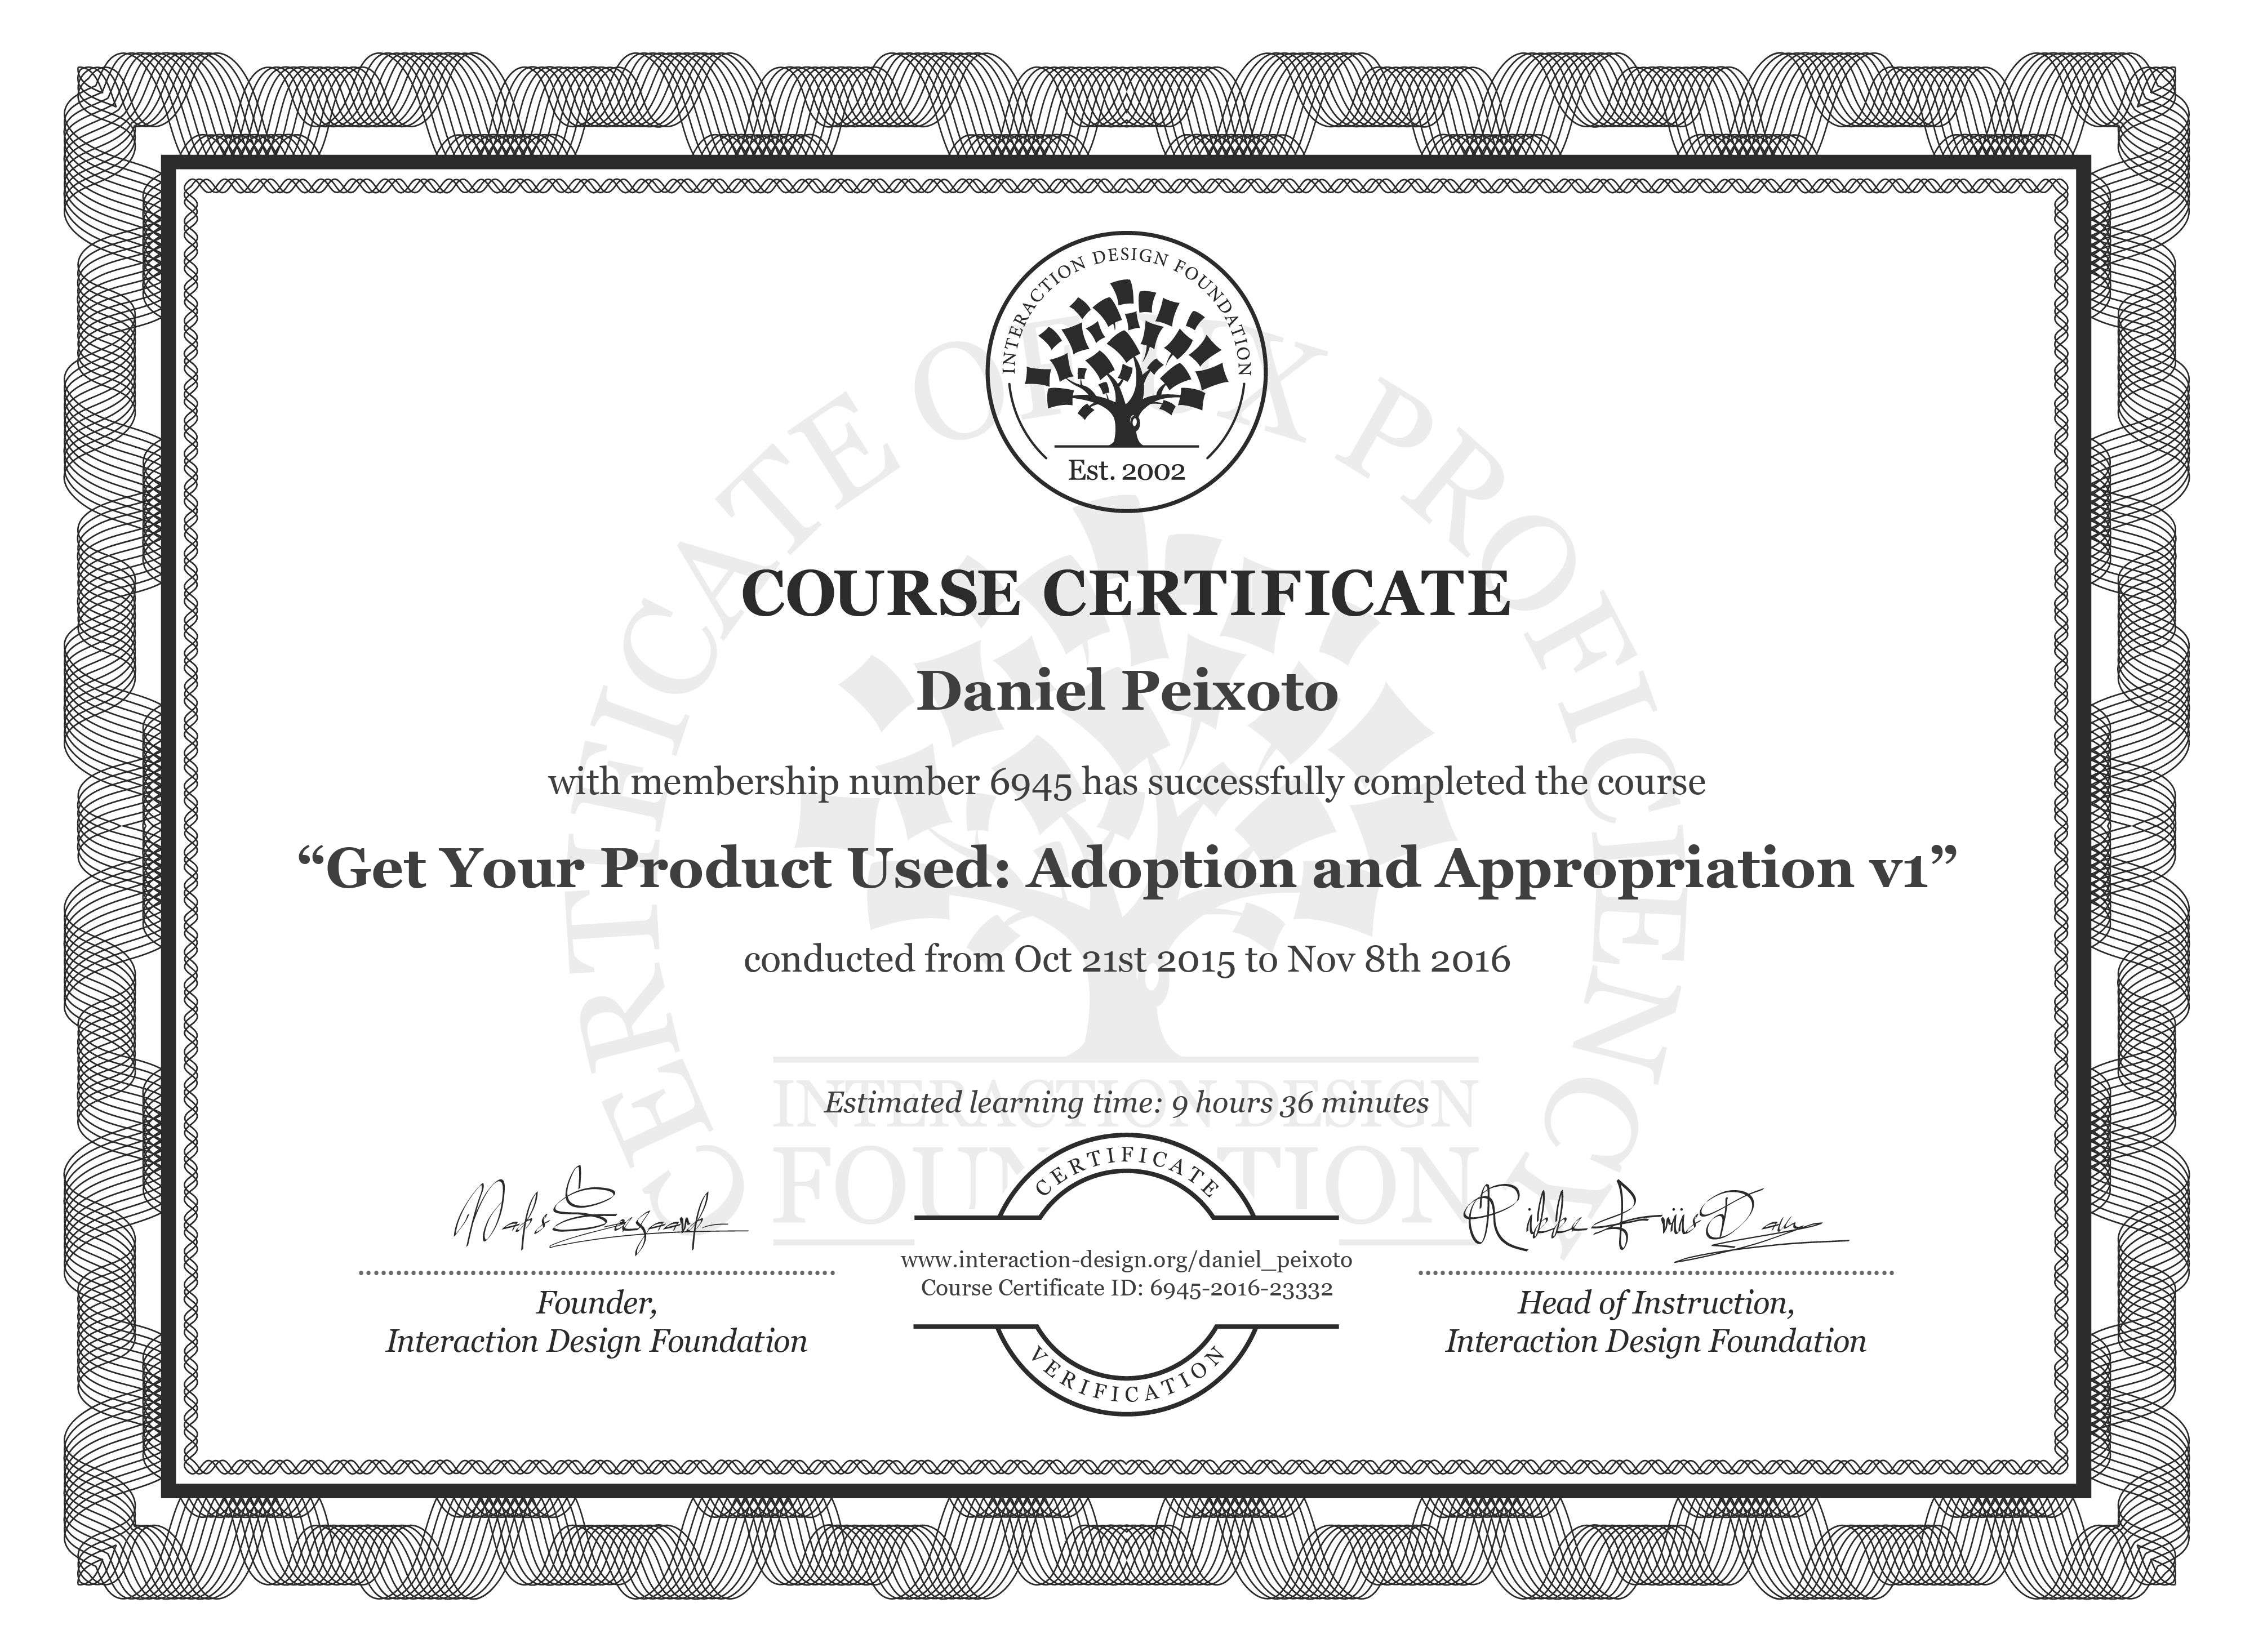 Daniel Peixoto's Course Certificate: Get Your Product Used: Adoption and Appropriation